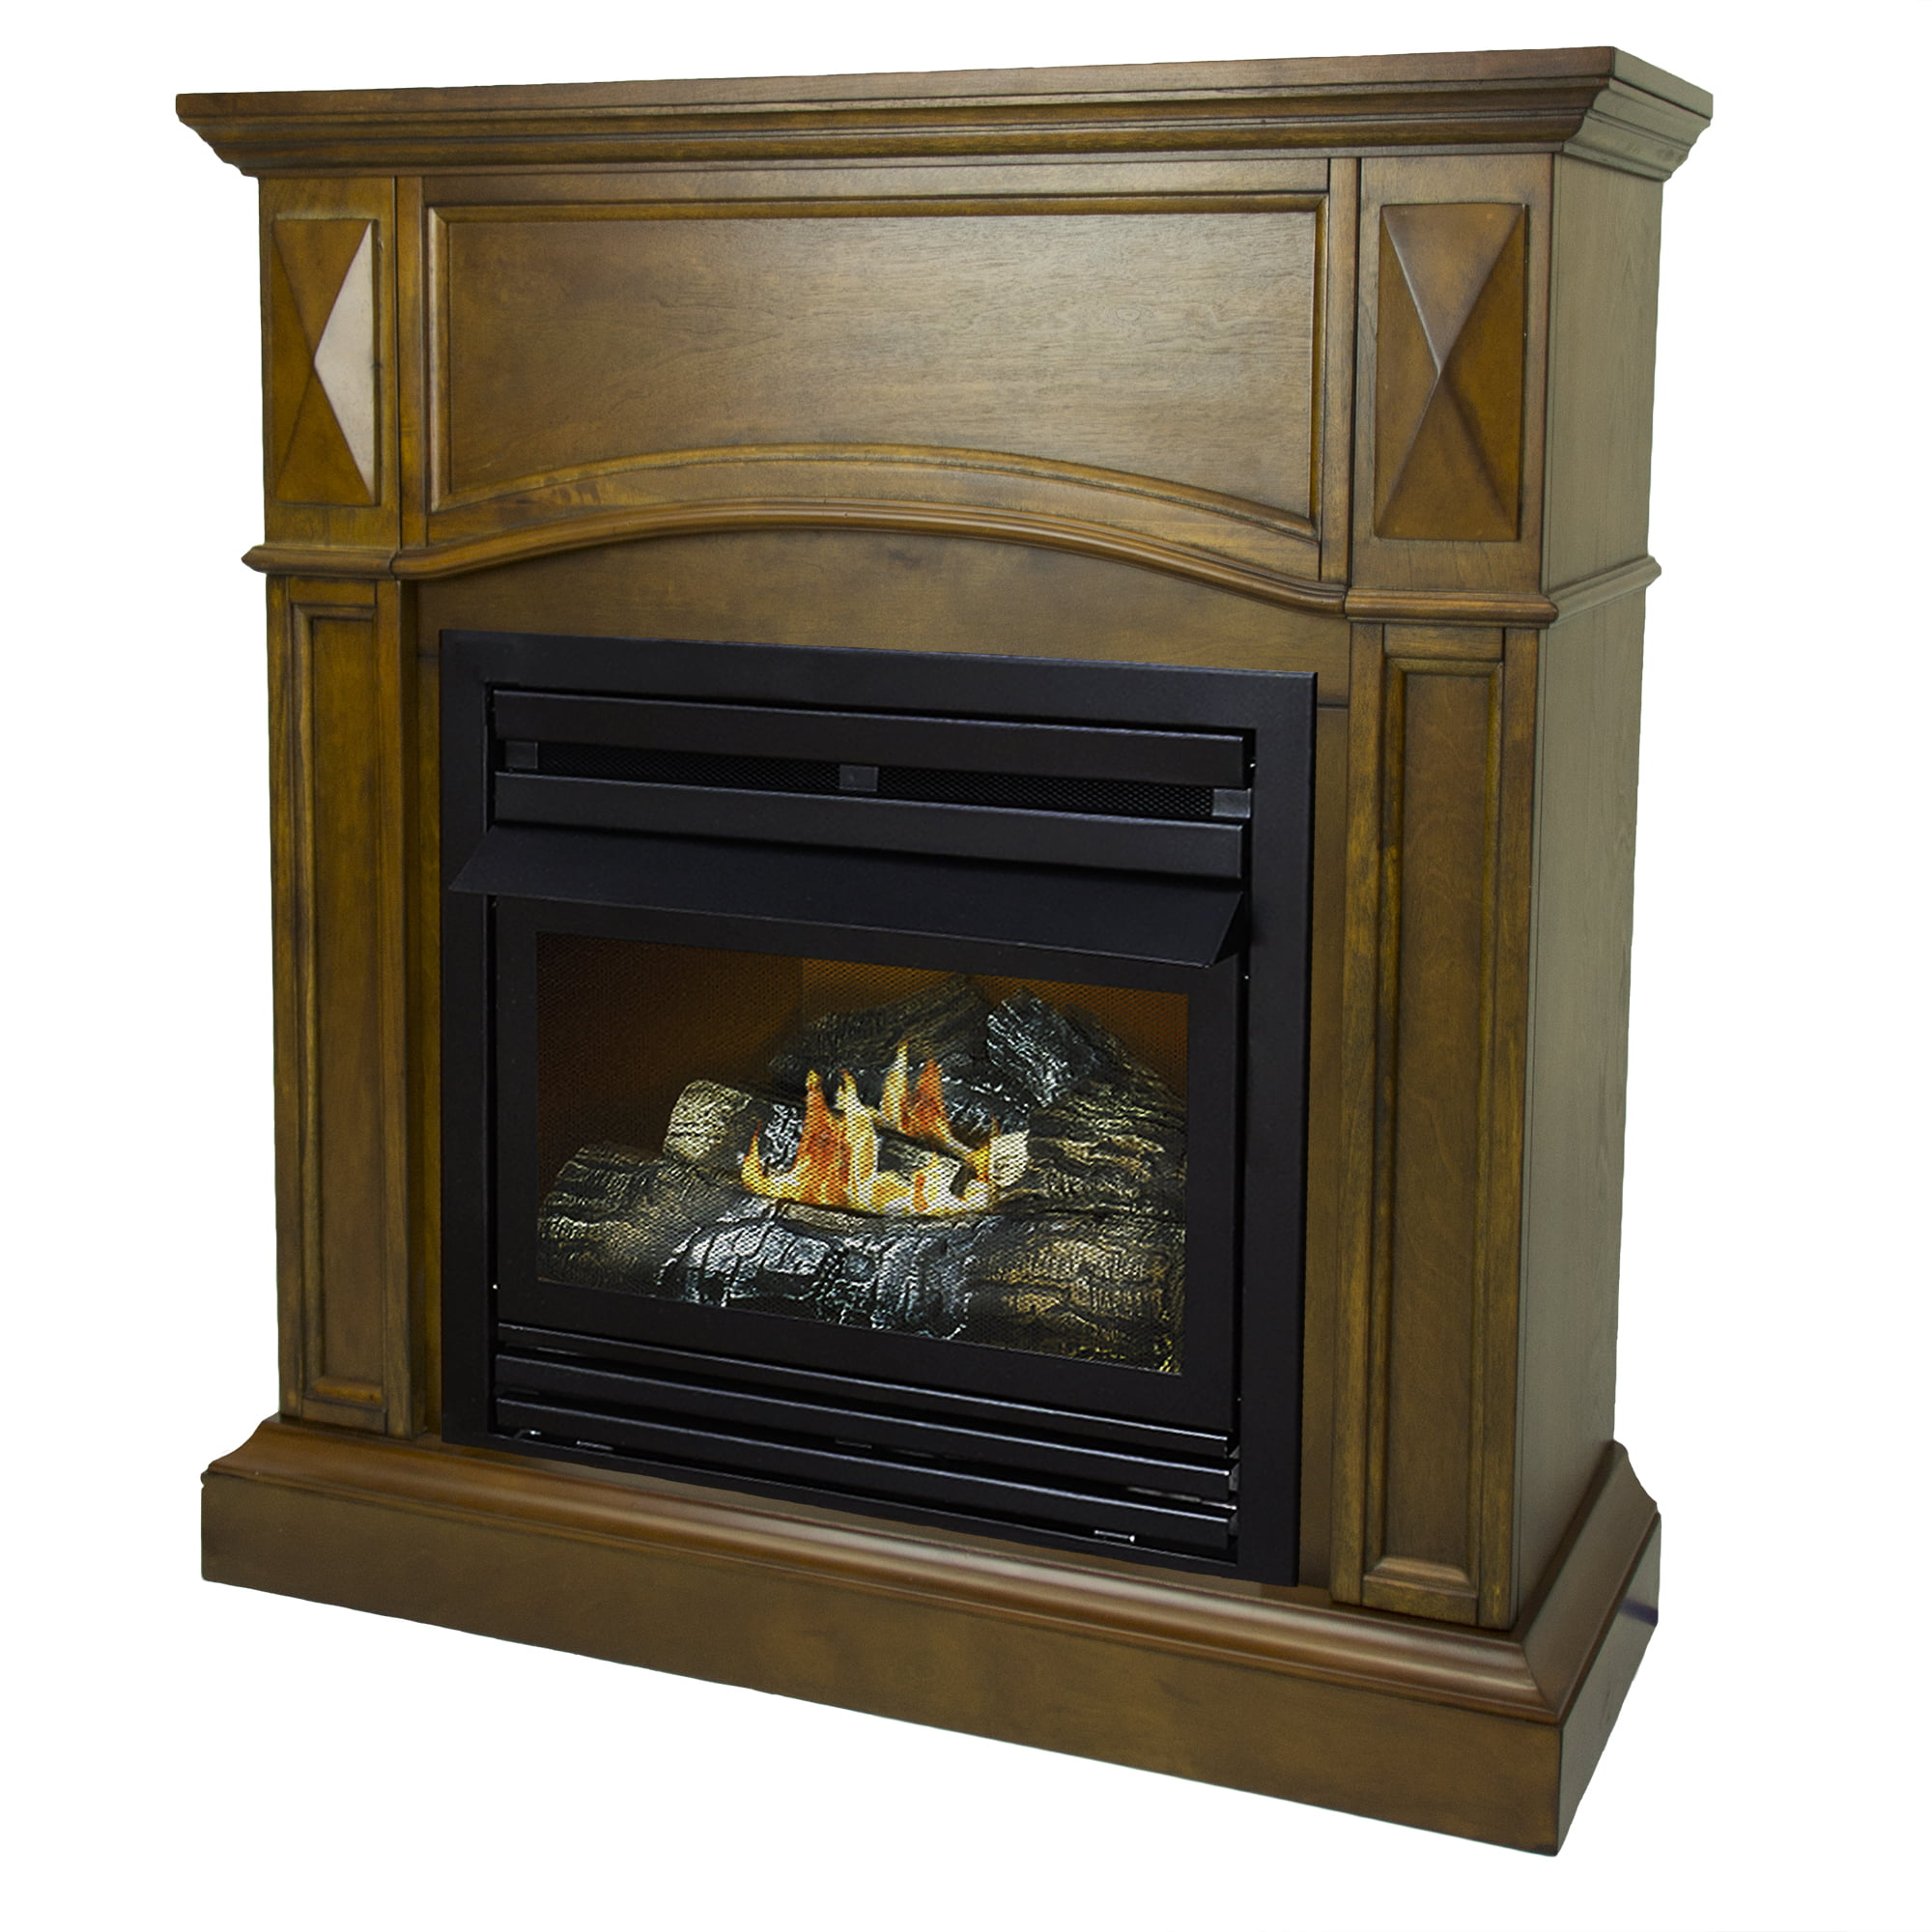 Pleasant Hearth 36 in. Natural Gas Compact Heritage Vent Free Fireplace System 20,000 BTU by GHP Group, Inc.